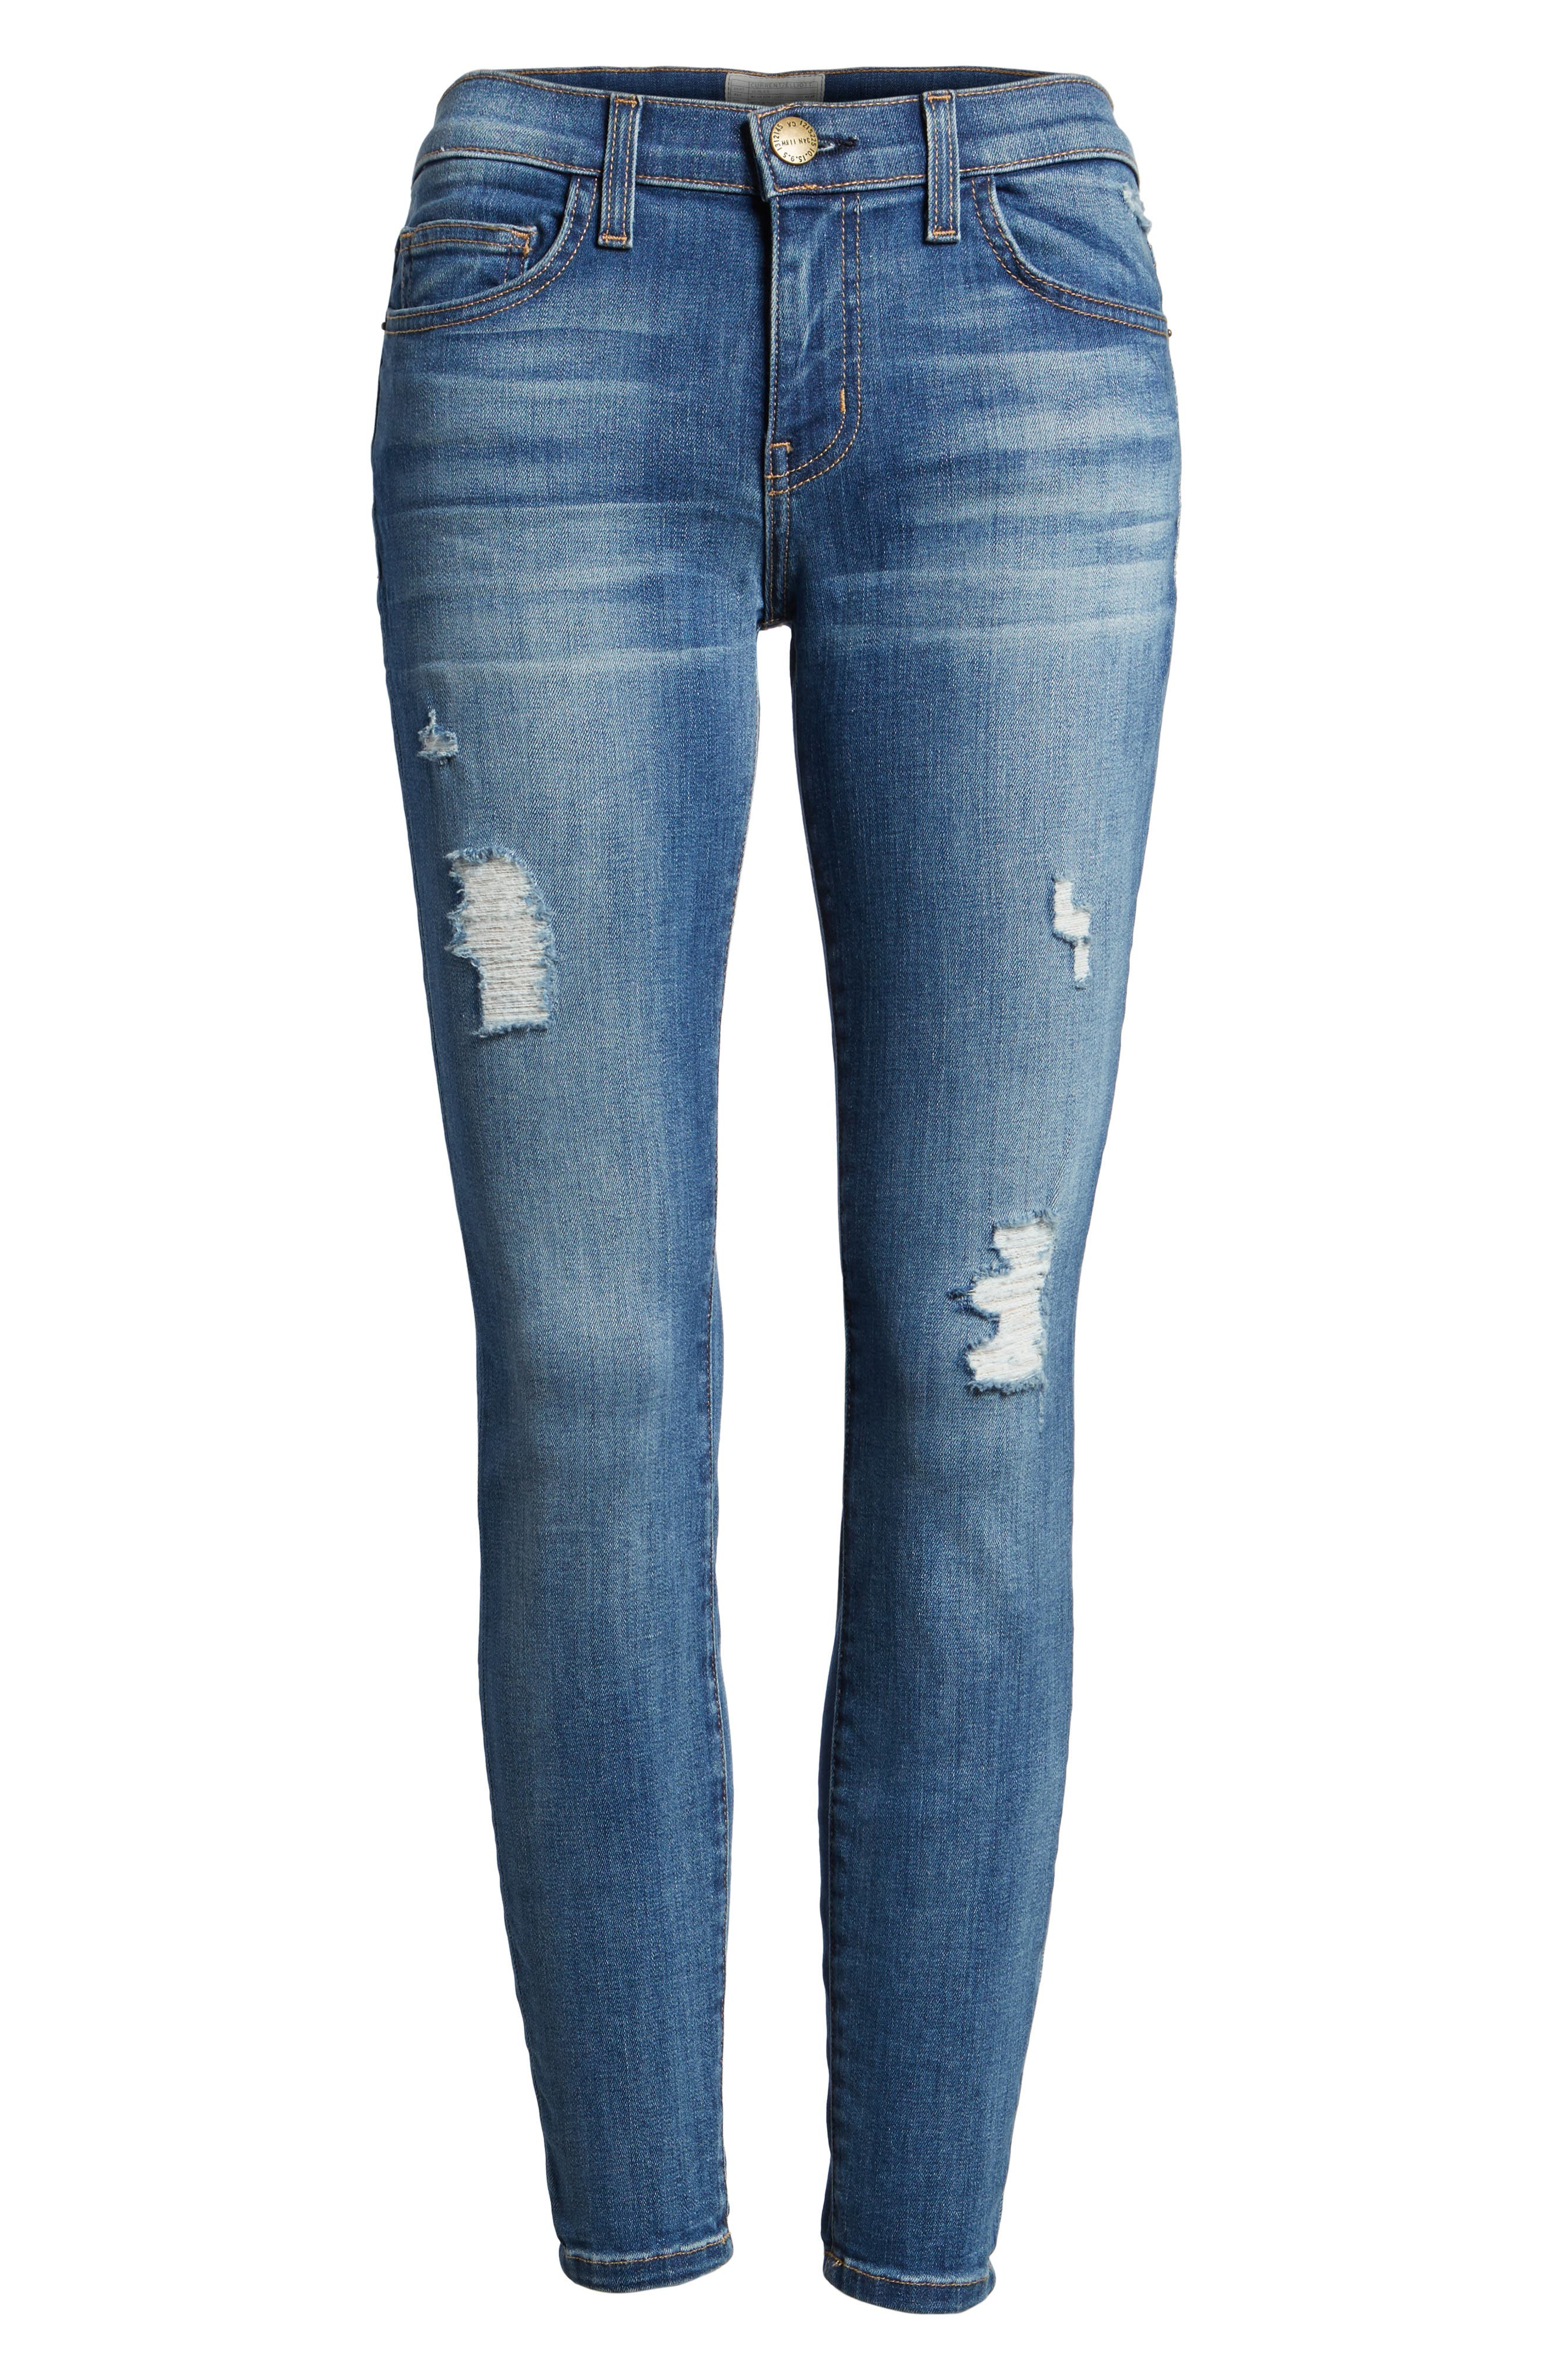 'The Stiletto' Destroyed Skinny Jeans,                             Main thumbnail 1, color,                             475